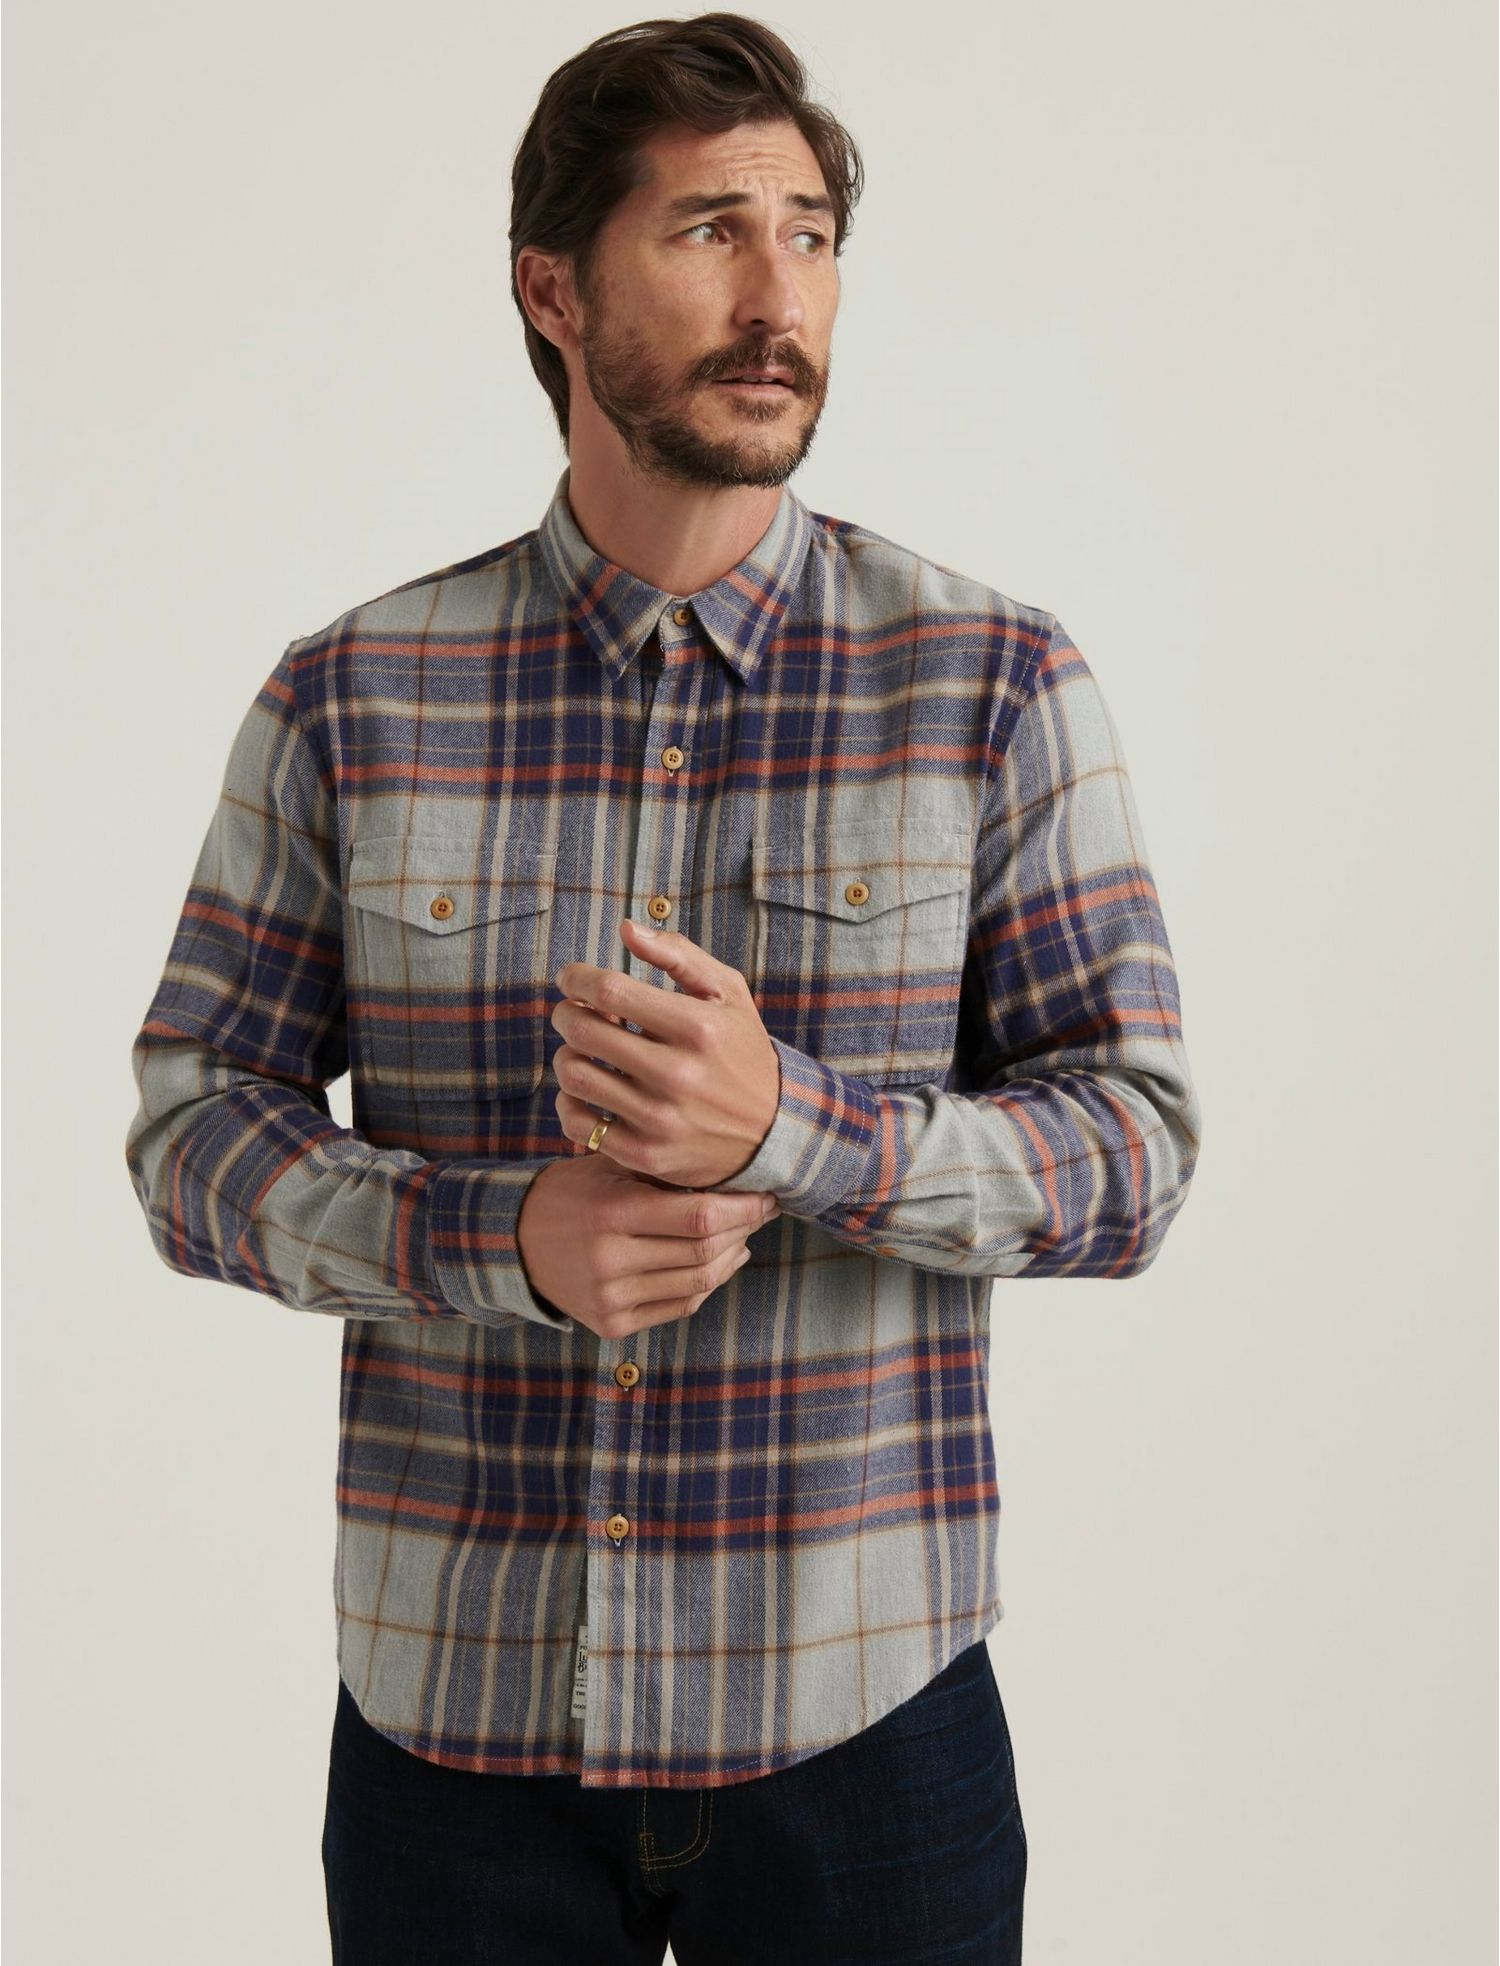 Men's Vintage Workwear – 1920s, 1930s, 1940s, 1950s Lucky Brand Redwood Workwear Shirt In Greyblue Size Small $23.98 AT vintagedancer.com